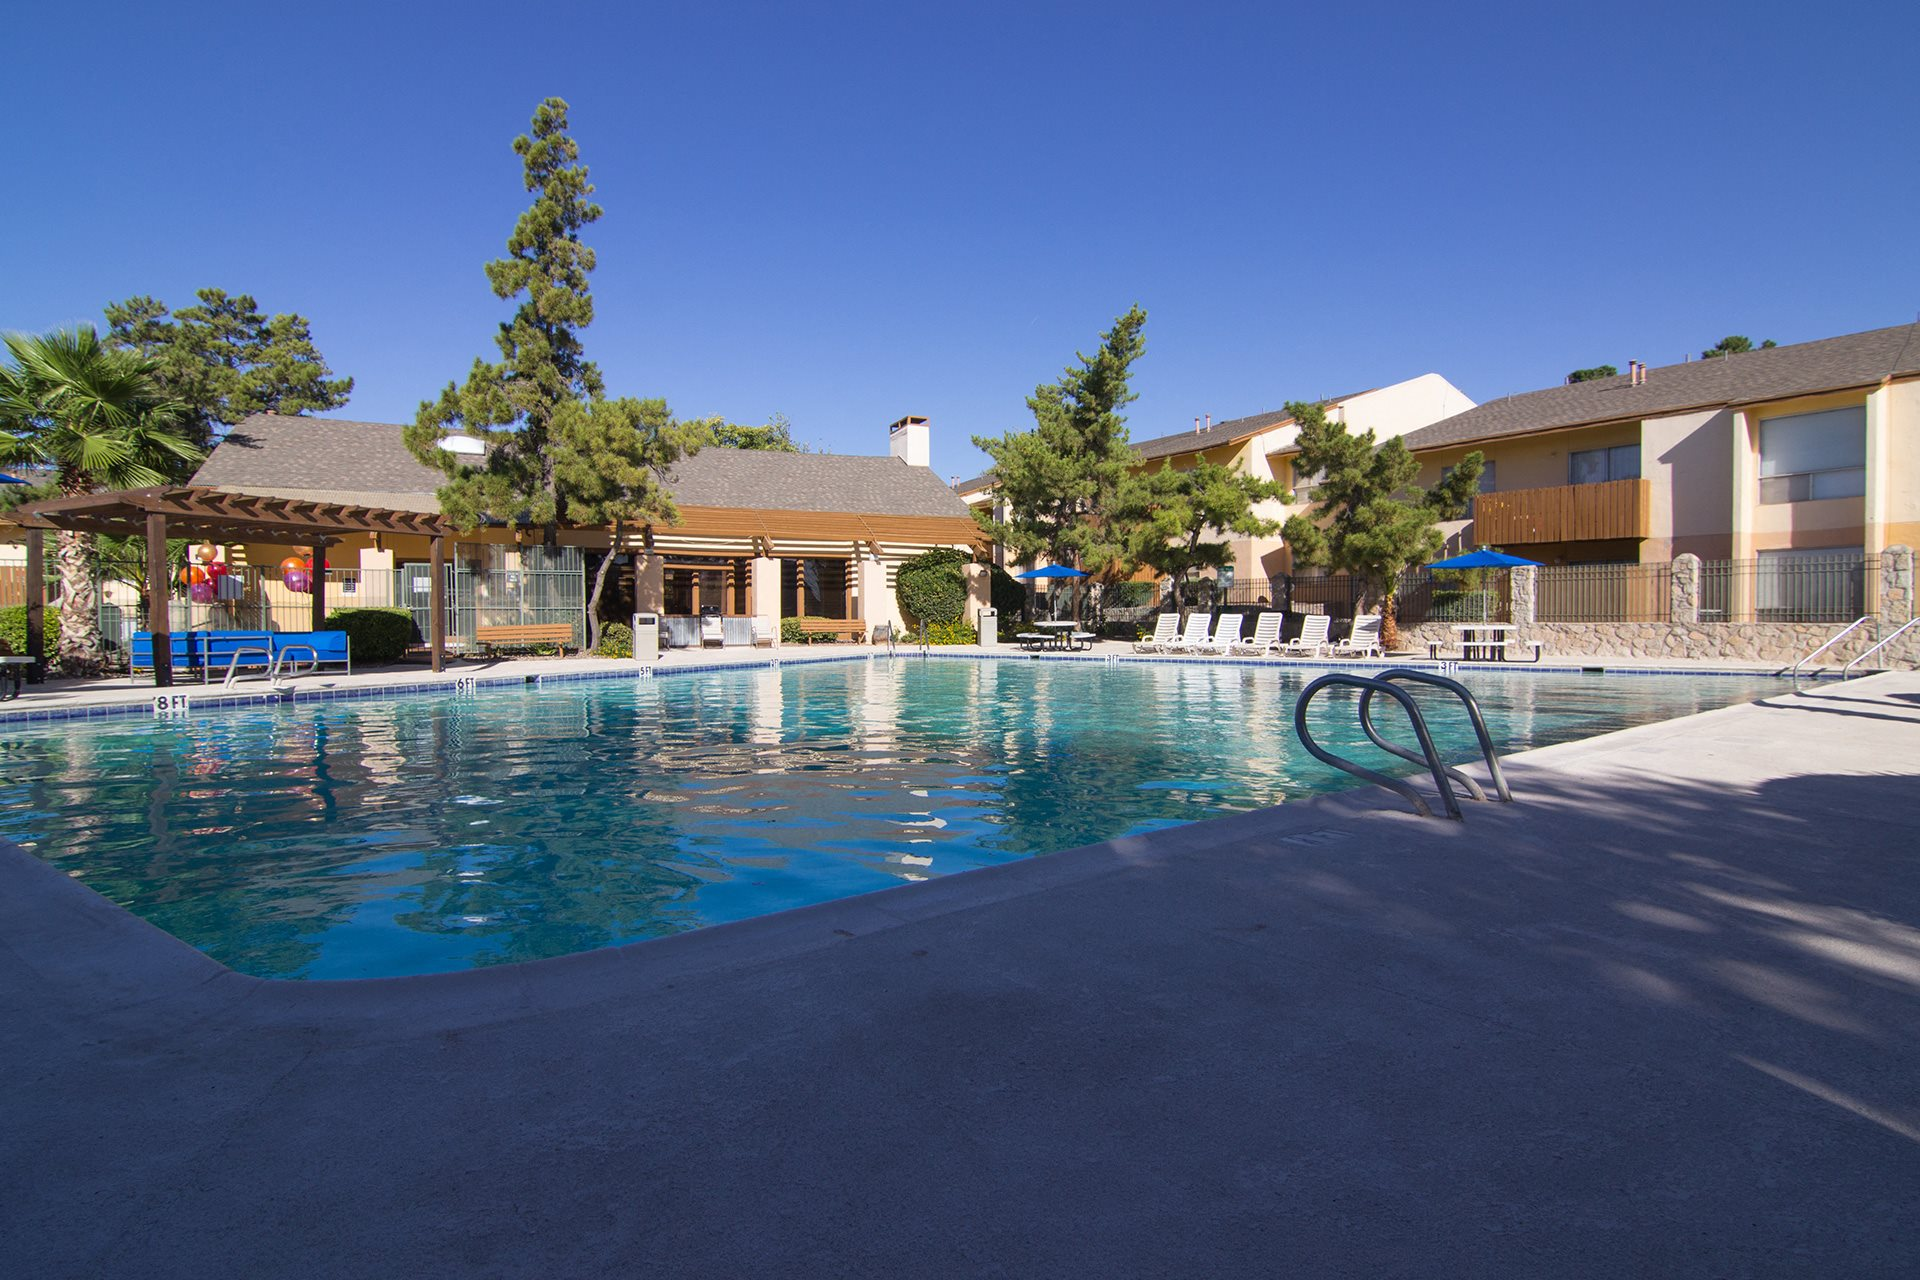 Pool, lounge chairs, apt building  El Paso, Texas 79935 l Ridgemar Texas Rentals